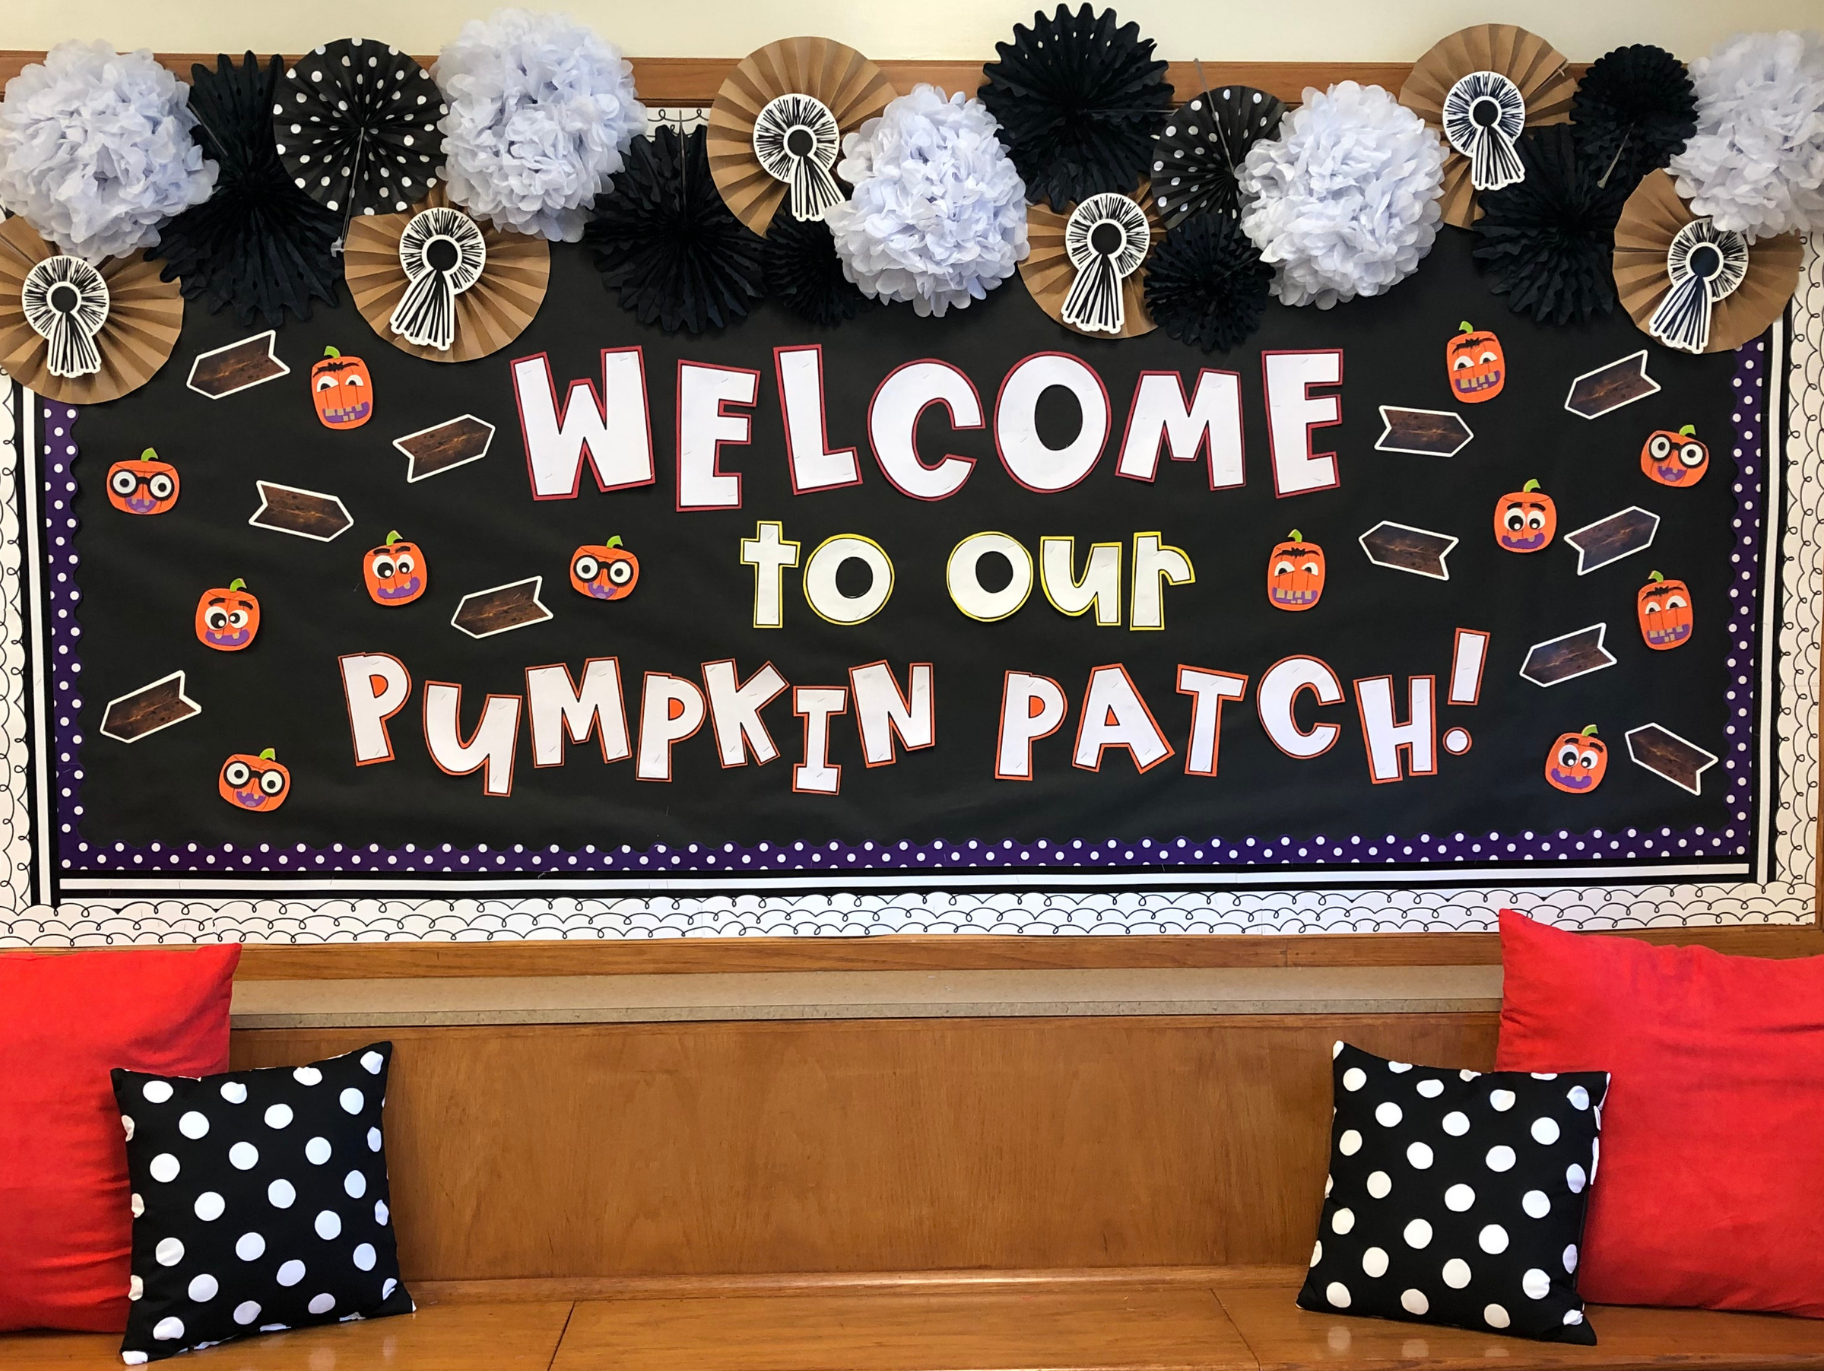 Welcome to our Pumpkin Patch Bulletin Board #pumpkinpatchbulletinboard Welcome to our Pumpkin Patch Bulletin Board #pumpkinpatchbulletinboard